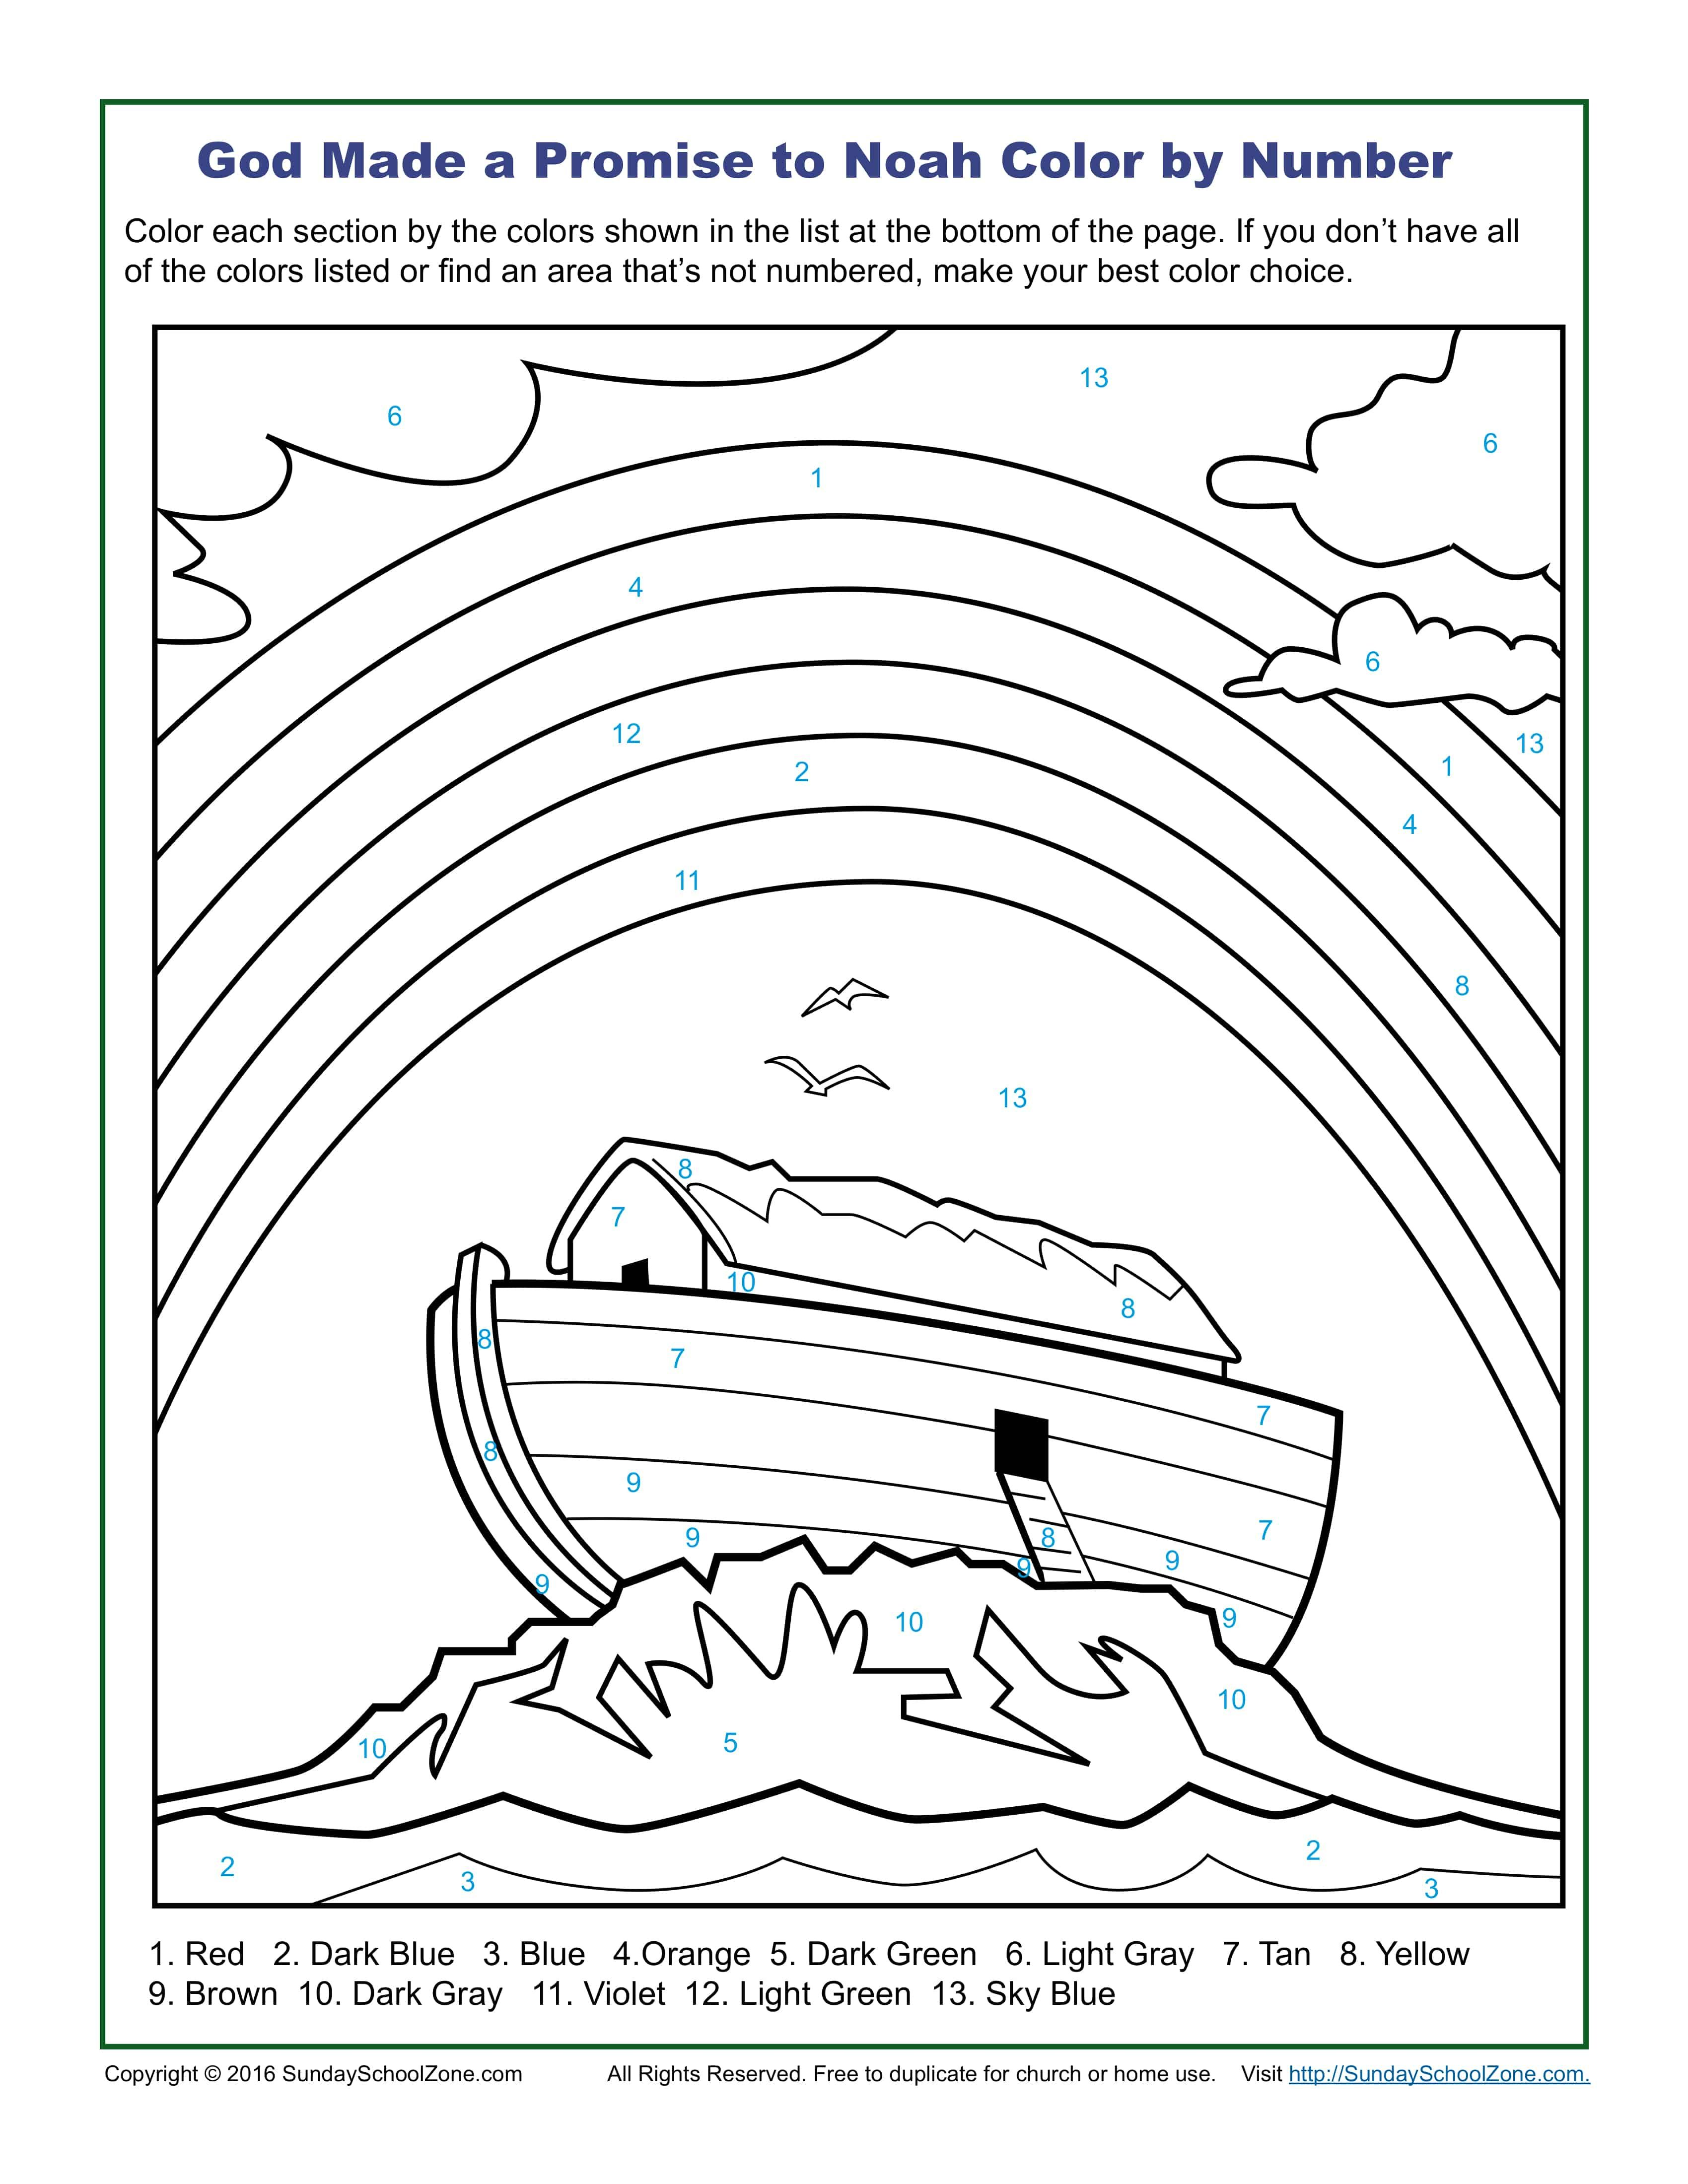 Color By Number Bible Coloring Pages On Sunday School Zone Bible Activities For Kids Bible Worksheets Sunday School Coloring Pages